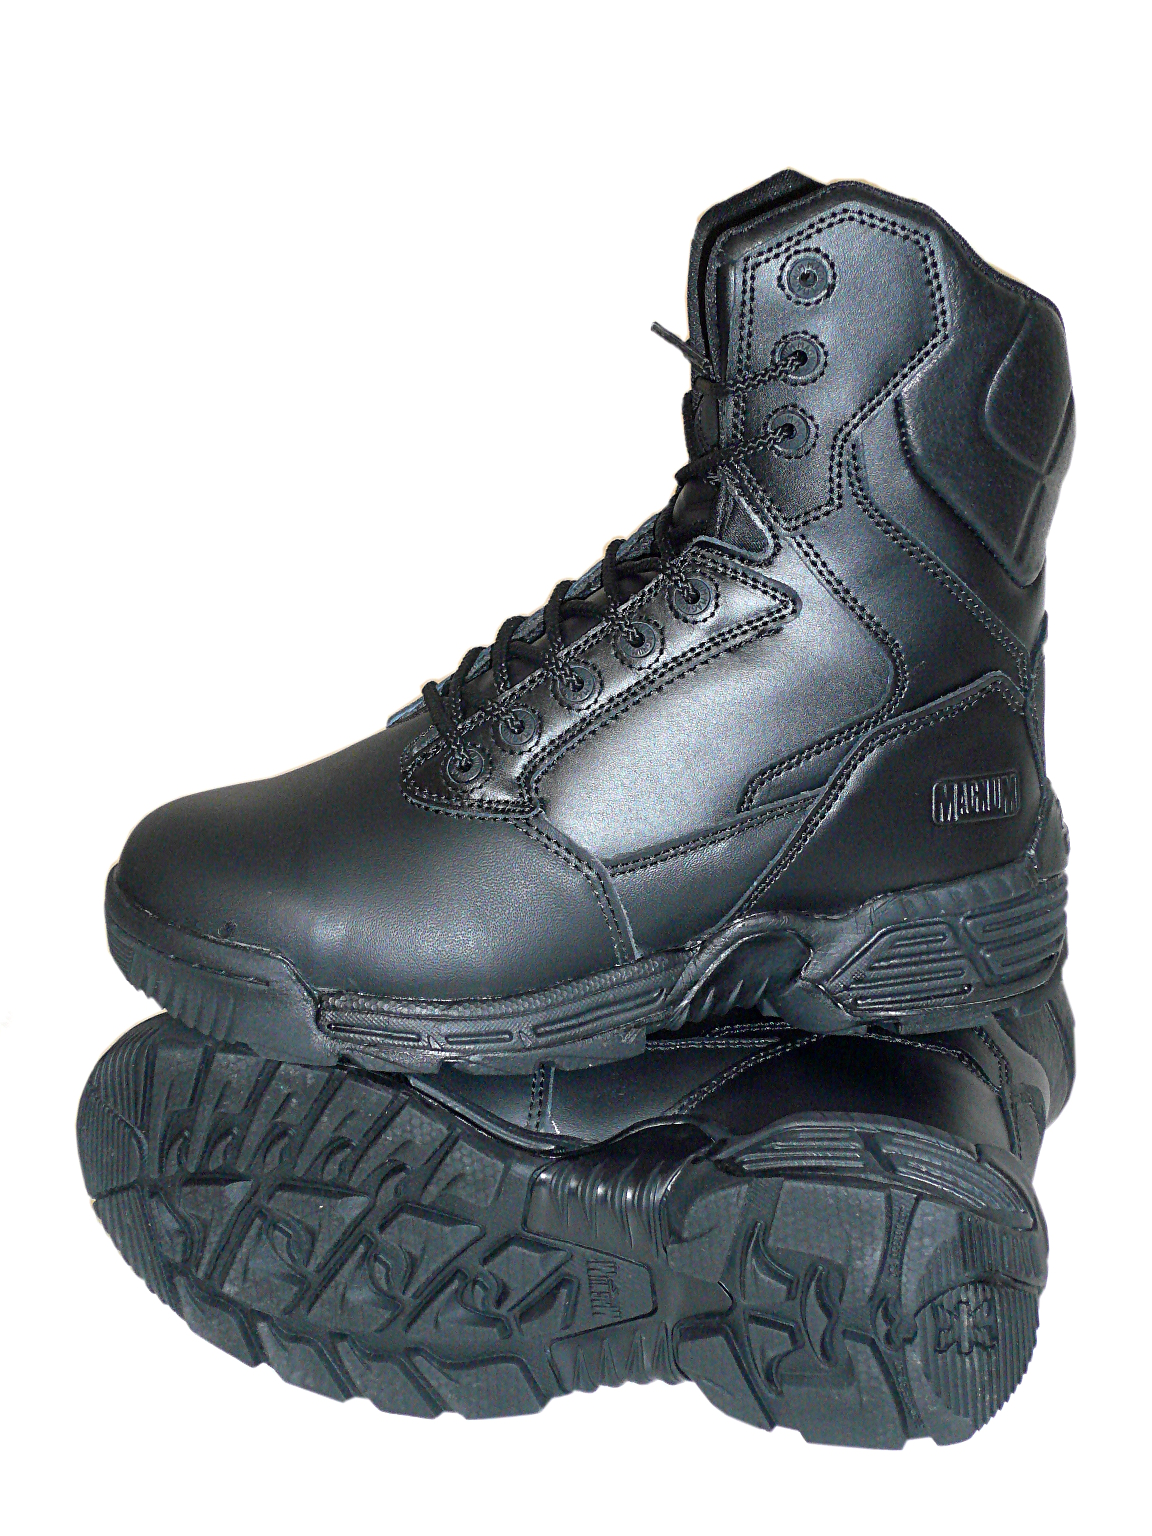 8cee6bf708a Magnum Stealth Force 8.0 CP Wide